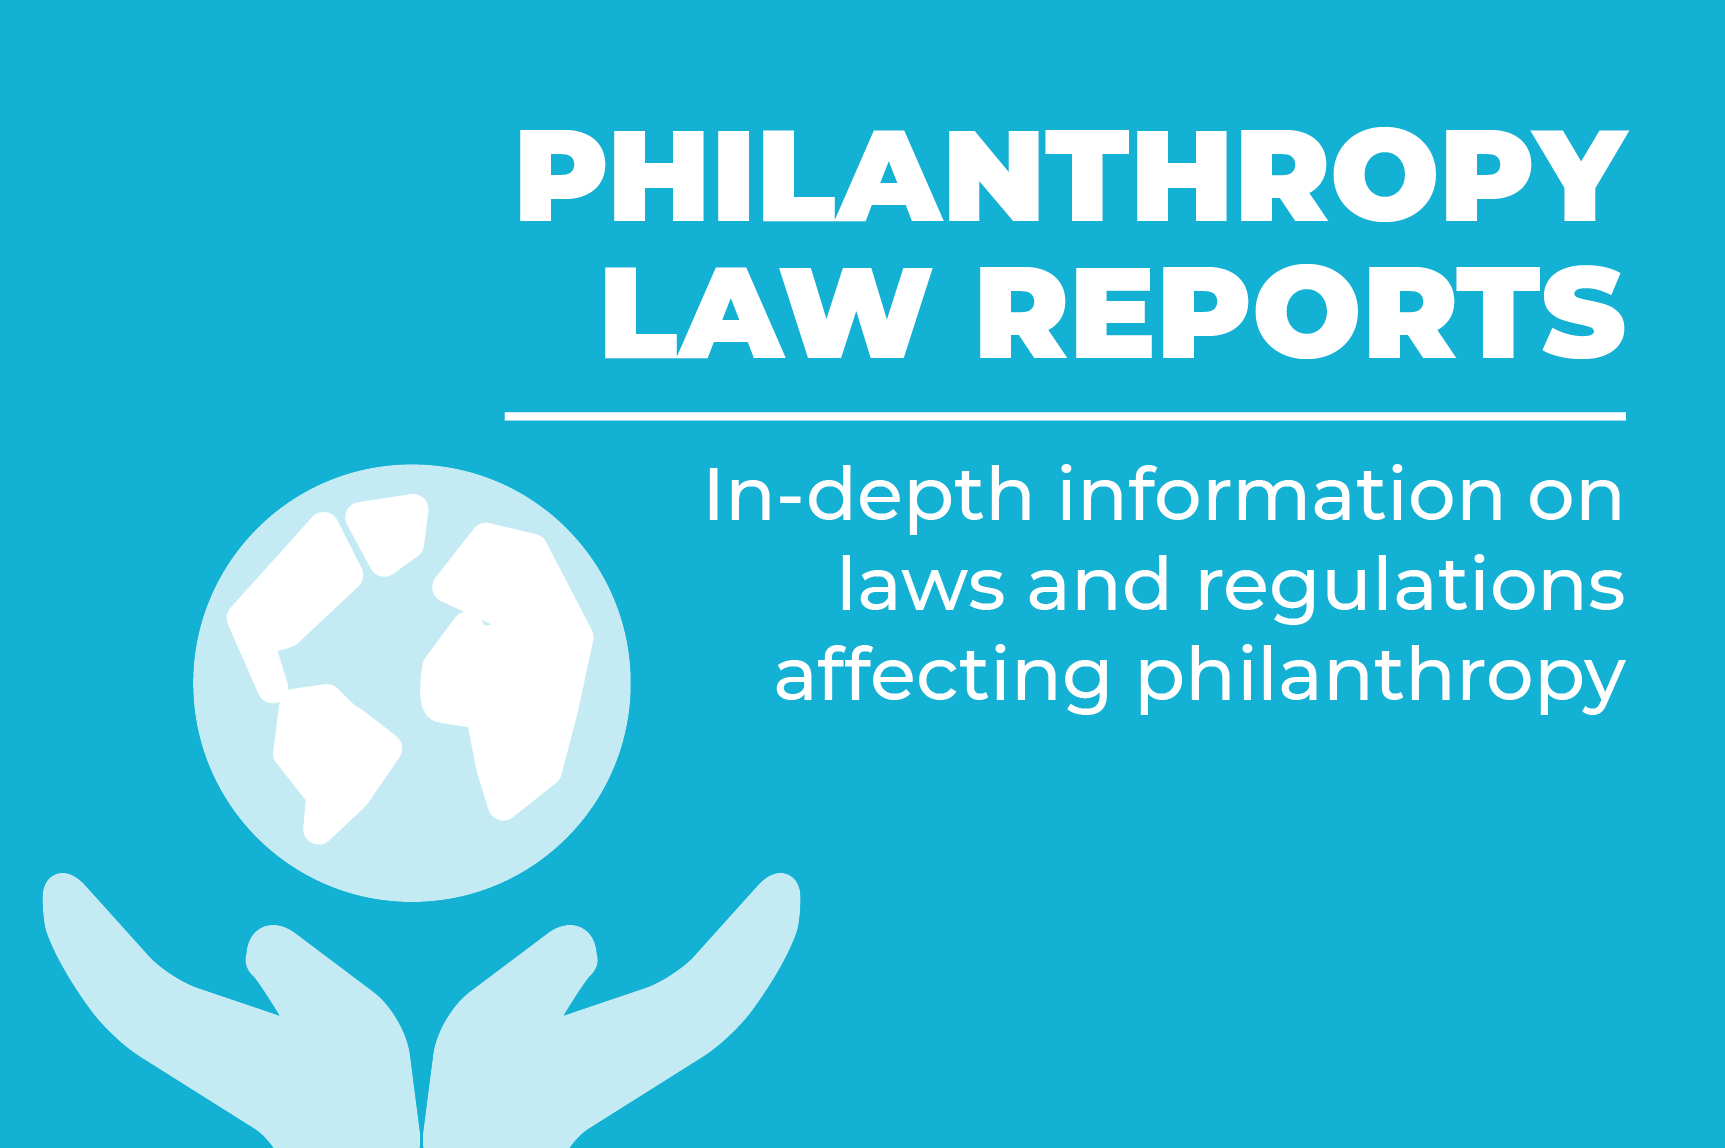 ICNL's Philanthropy Law Reports - landing page button